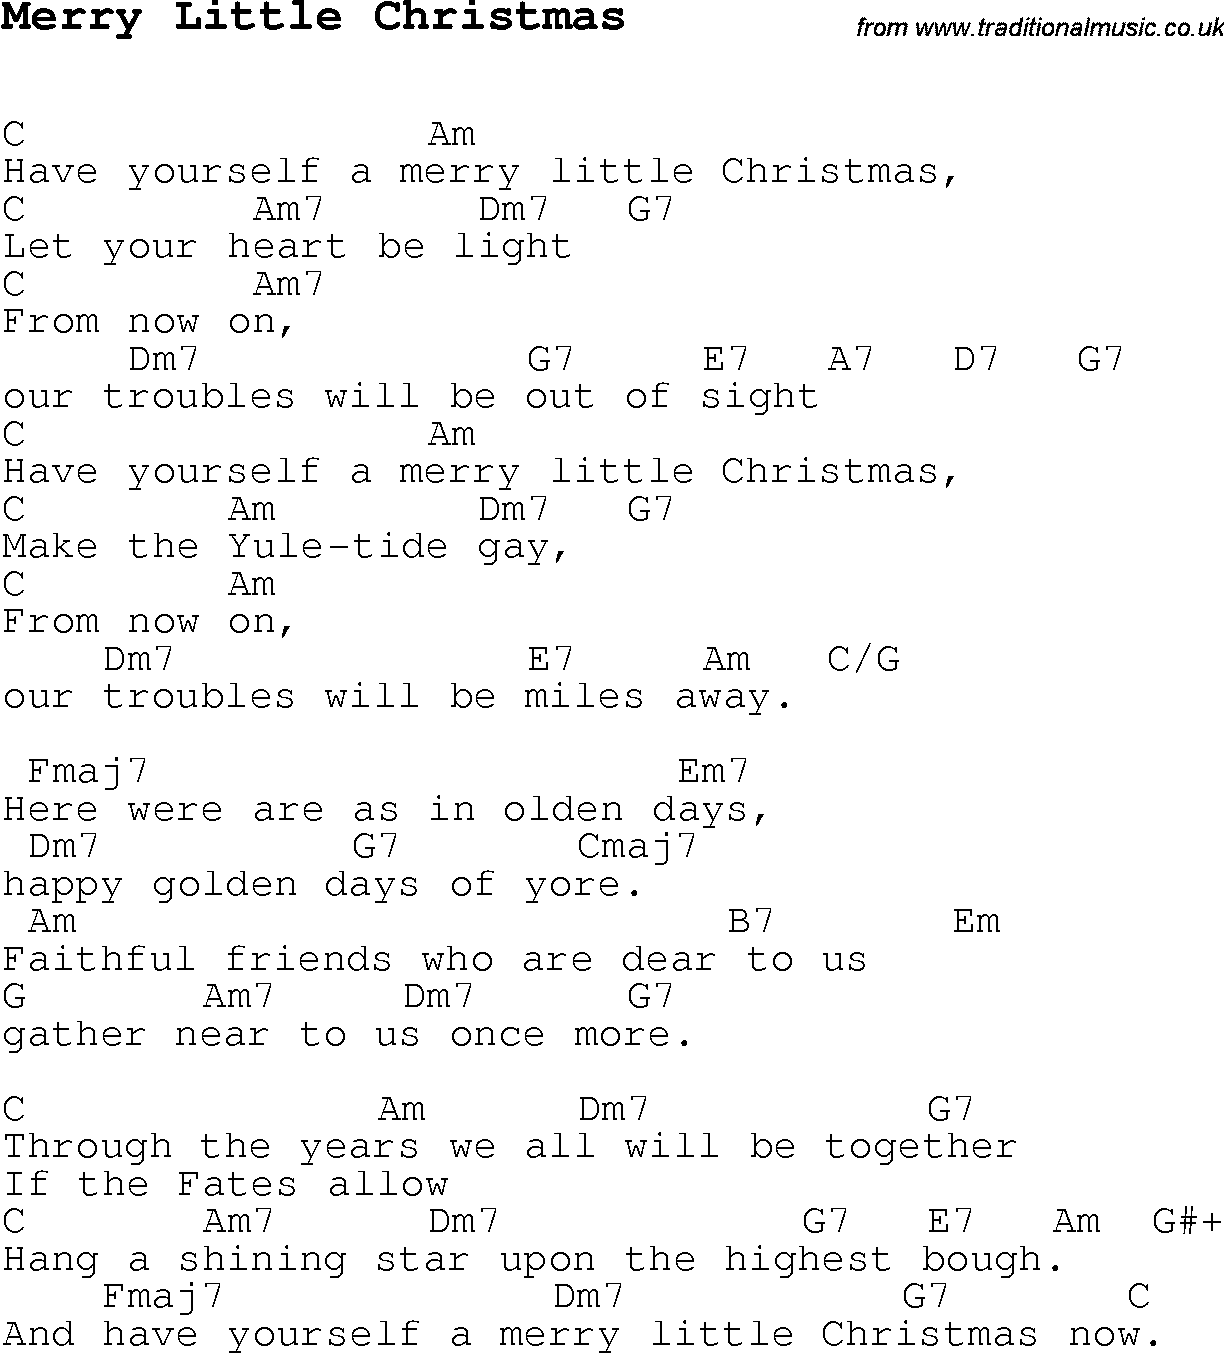 Christmas Carol/Song lyrics with chords for Merry Little Christmas